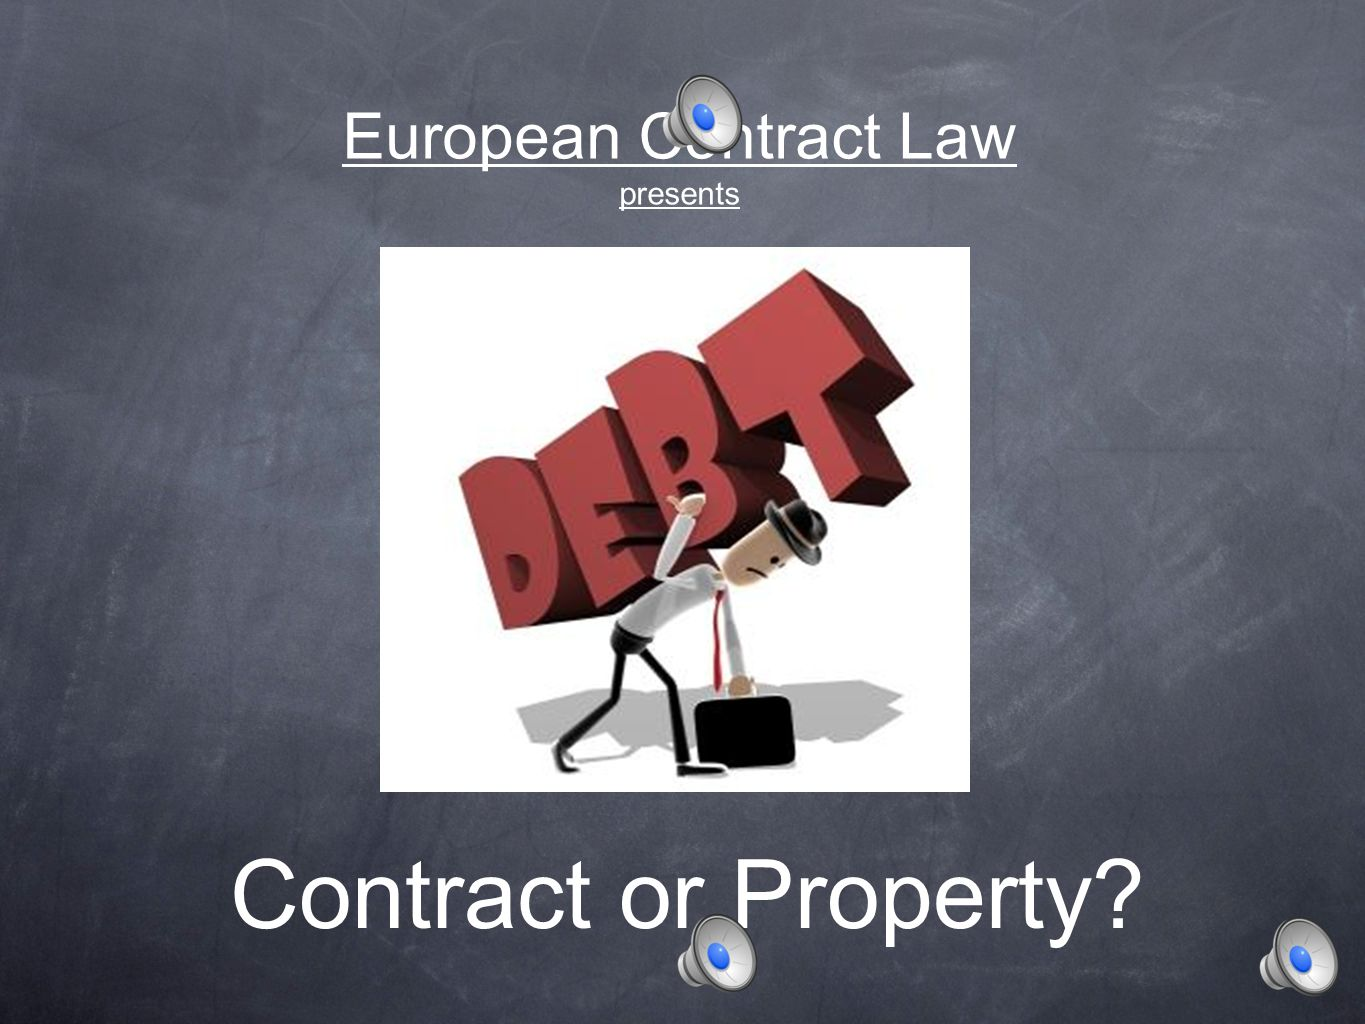 European Contract Law presents Contract or Property